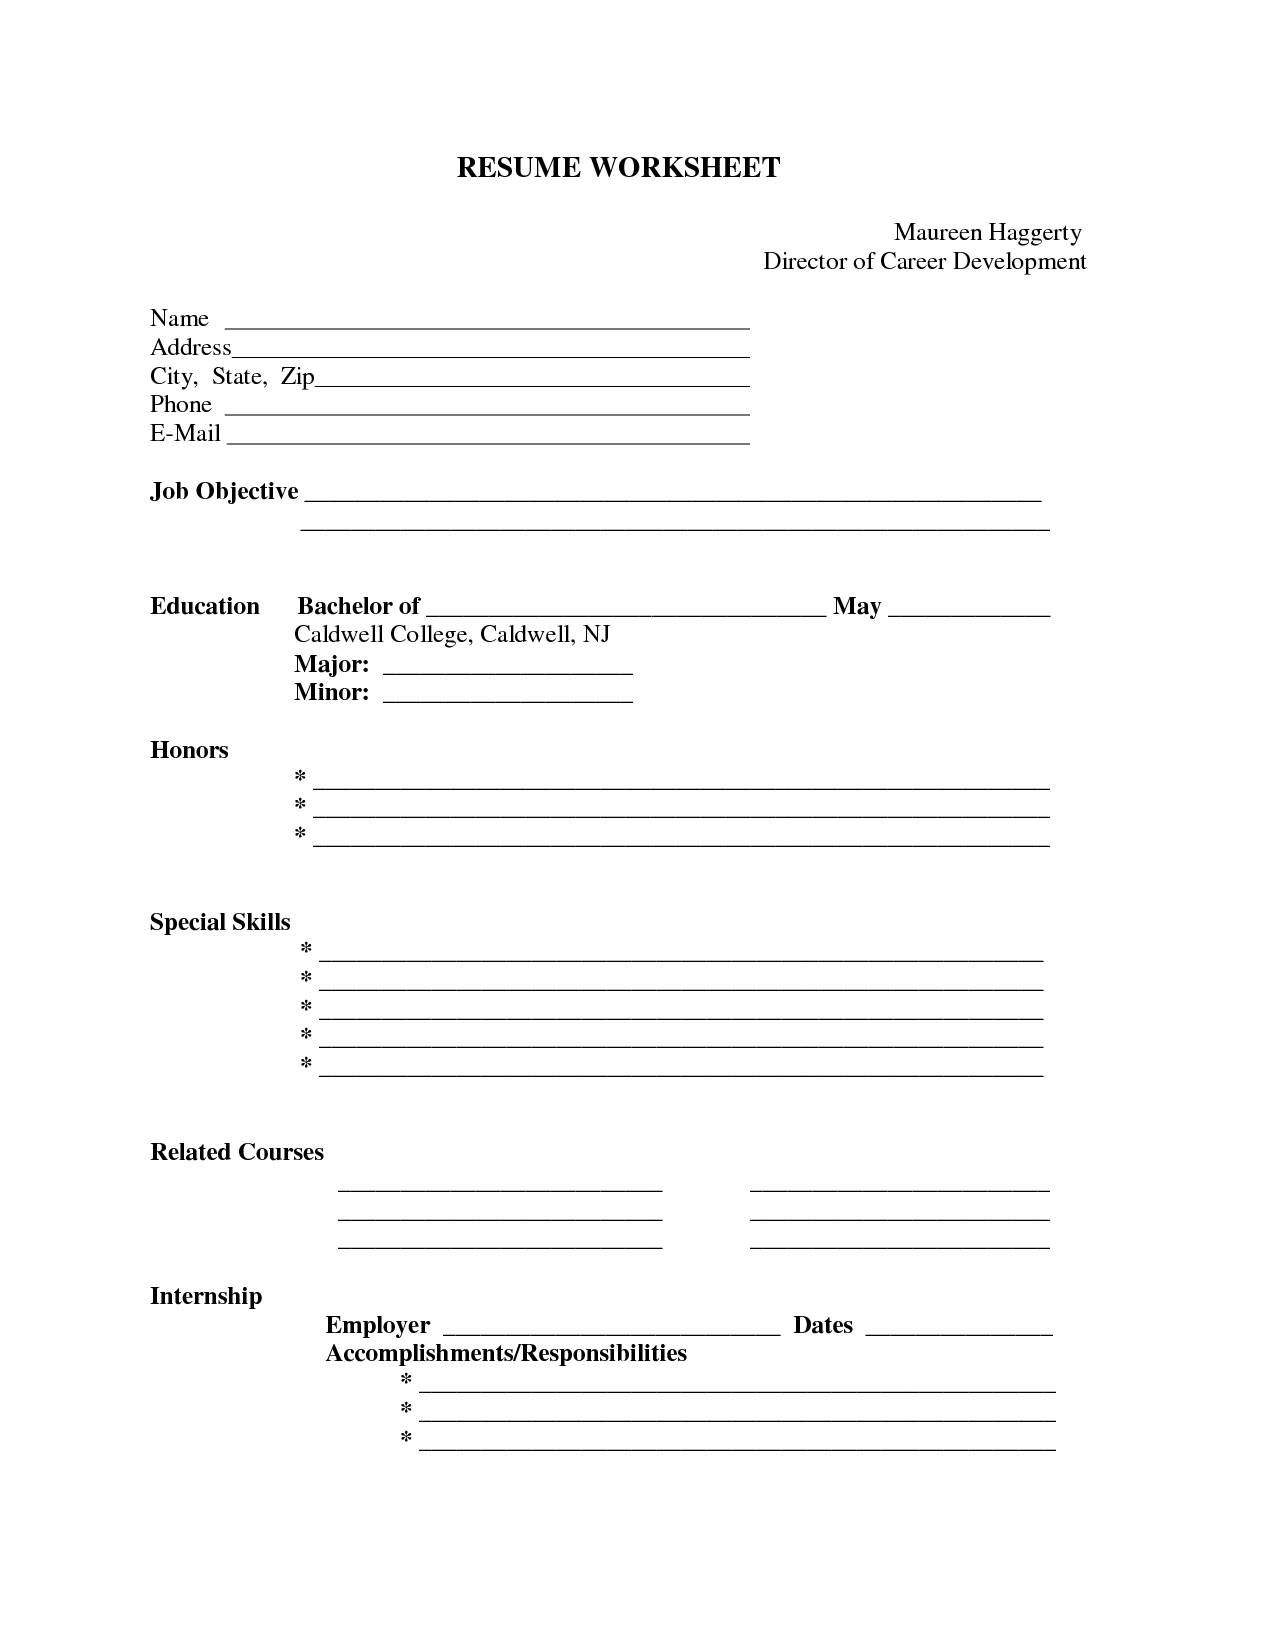 Charming Free Printable Blank Resume Forms   Http://www.resumecareer.info/ Within Resume Blank Form